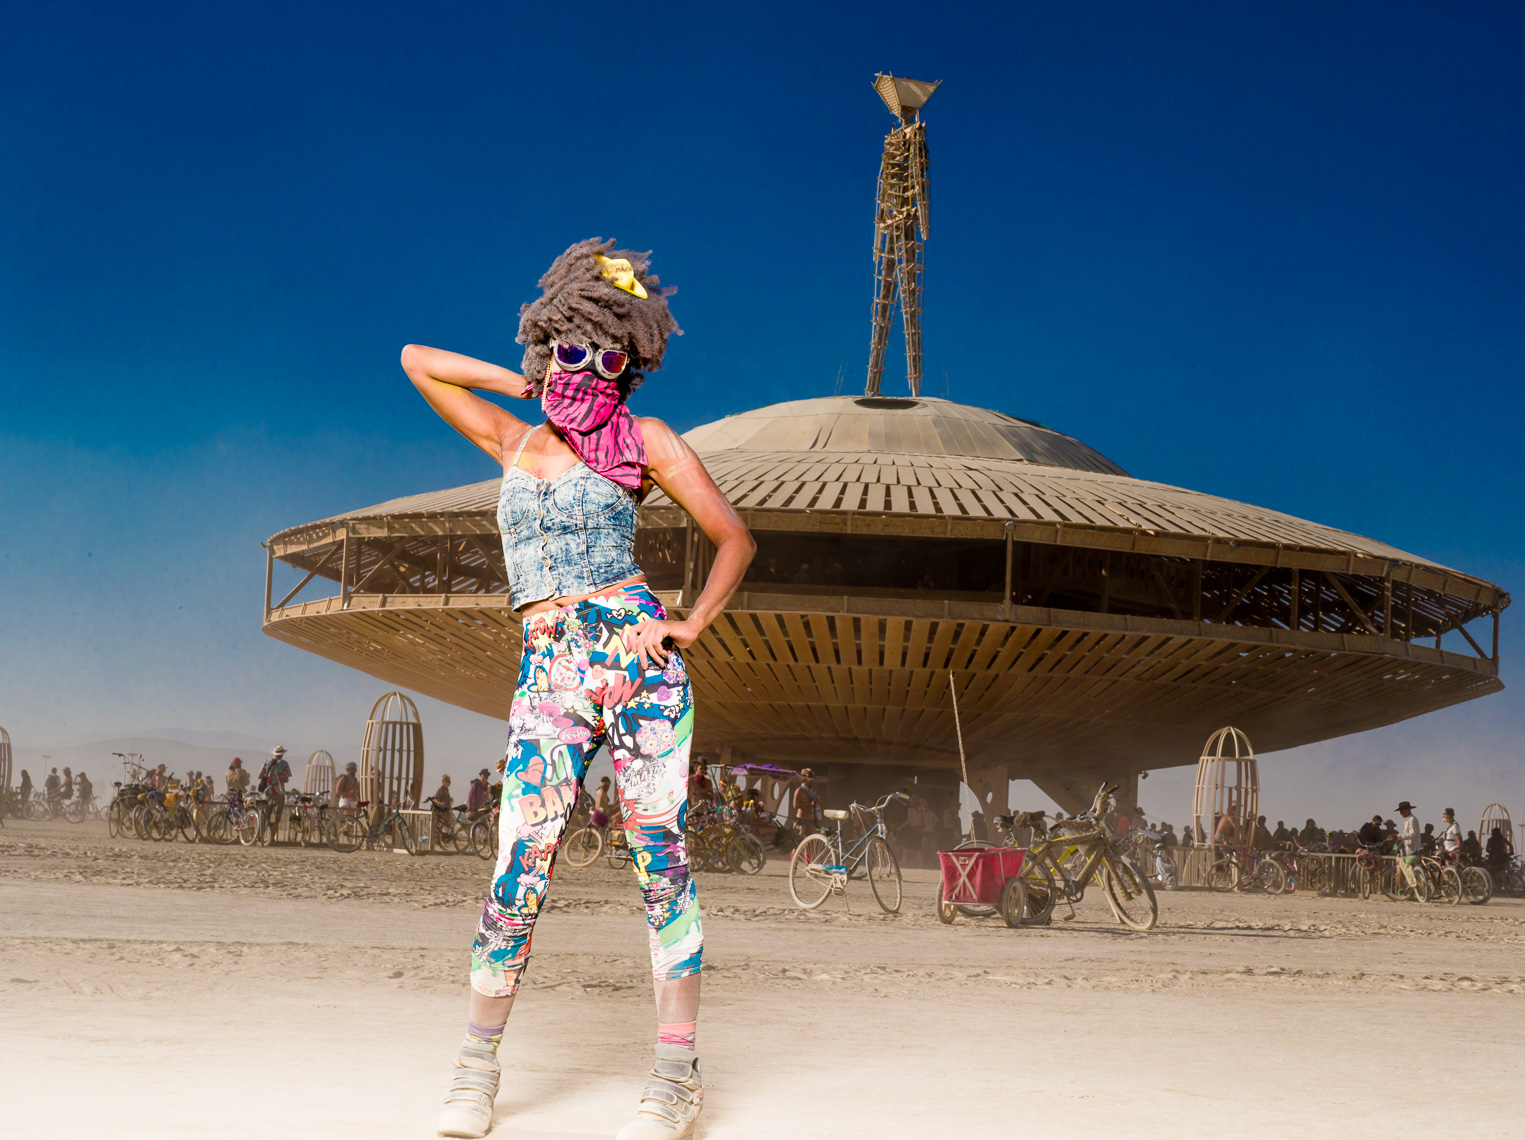 Eric_Schwabel-Burning Man 2013_008470